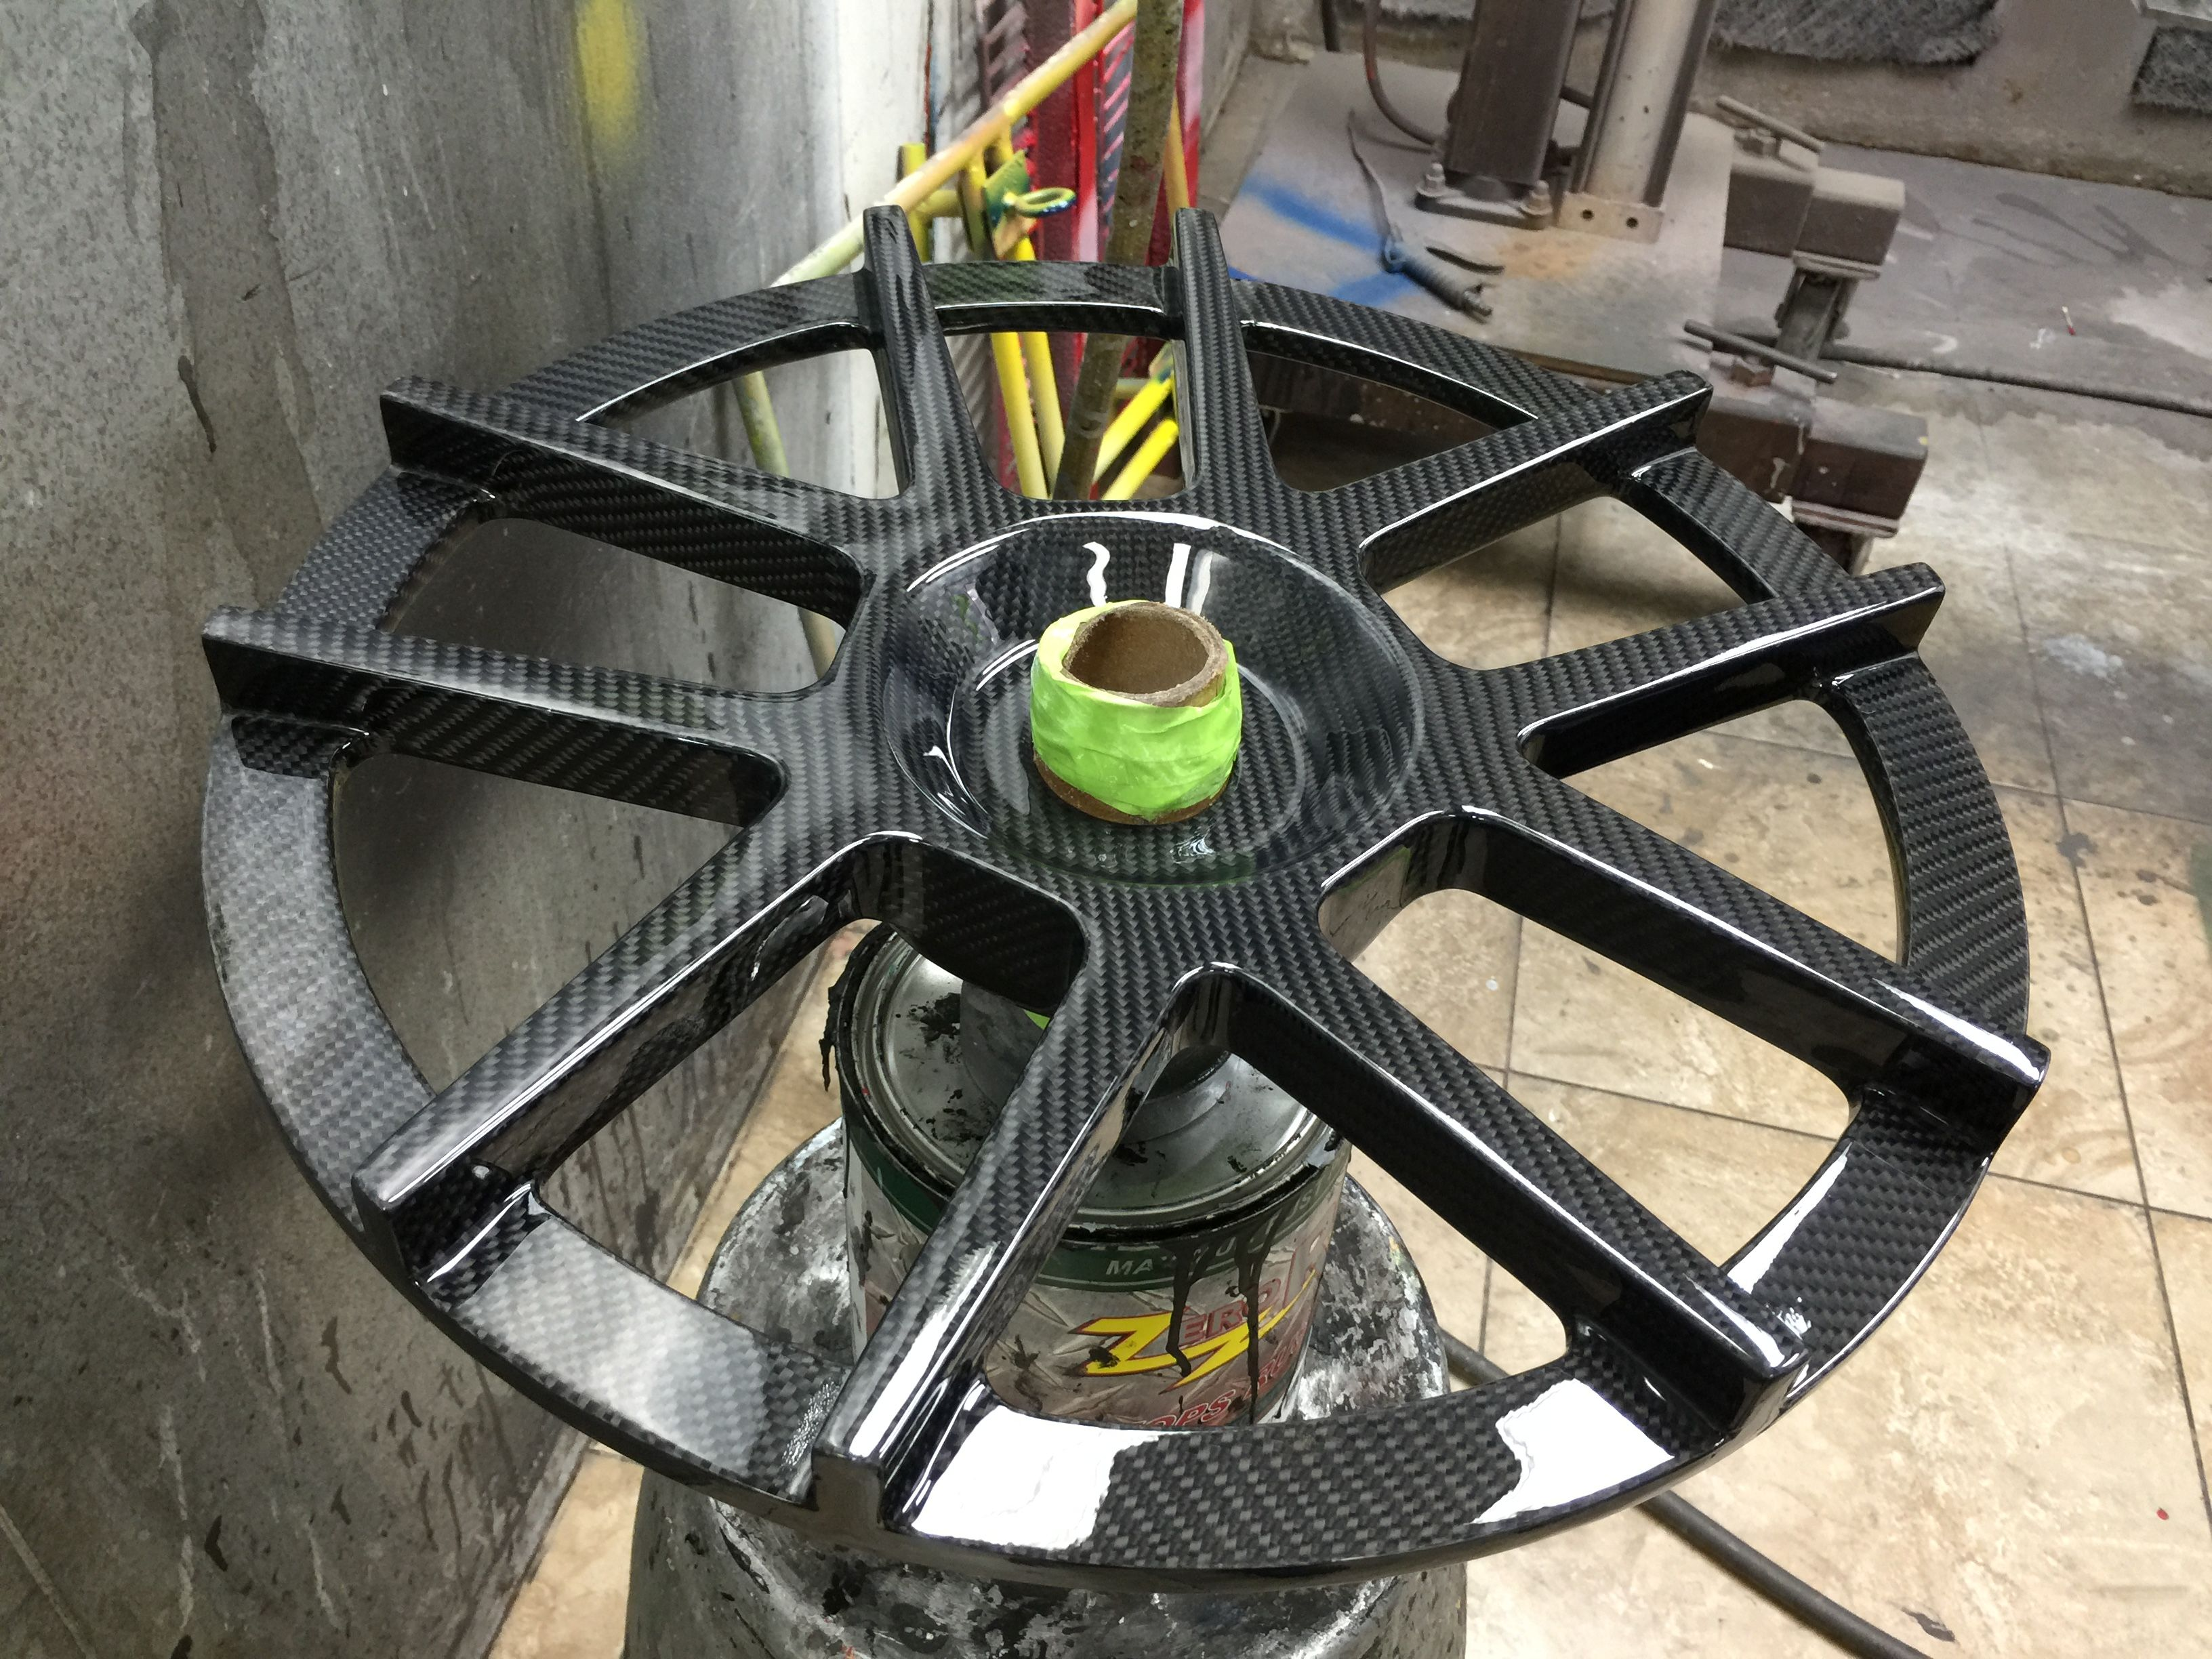 Full Carbon Fiber Wheel Made With Forged Composites And Weighs